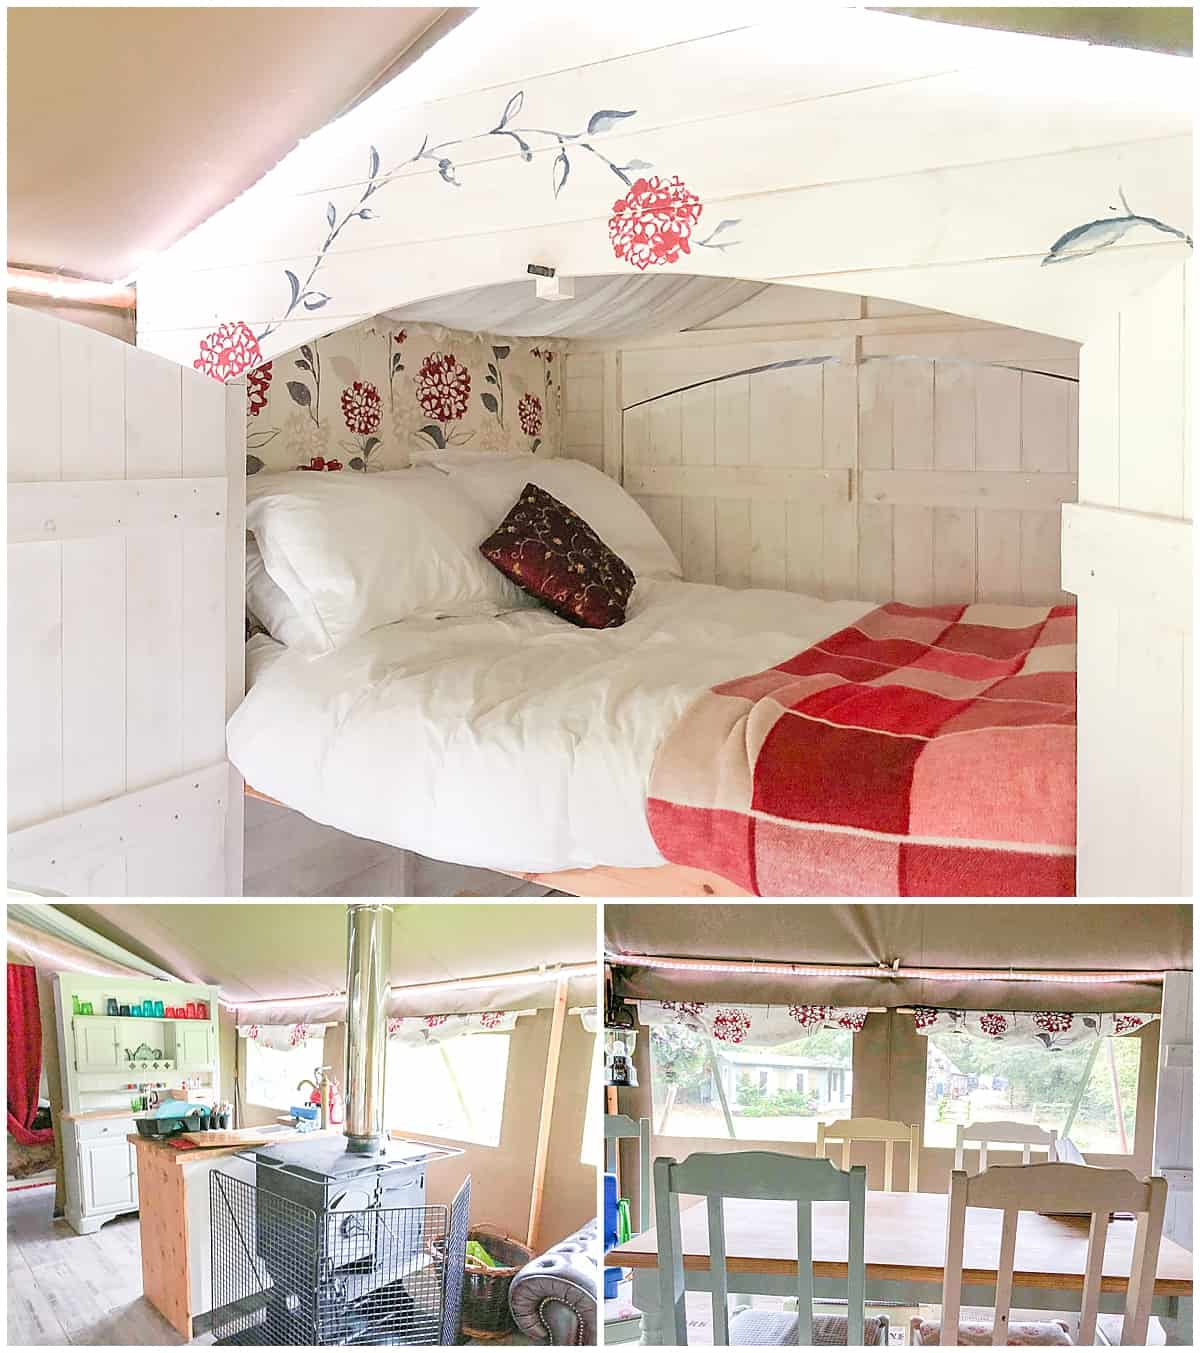 Inside glamping tent at Felin Geri in Wales